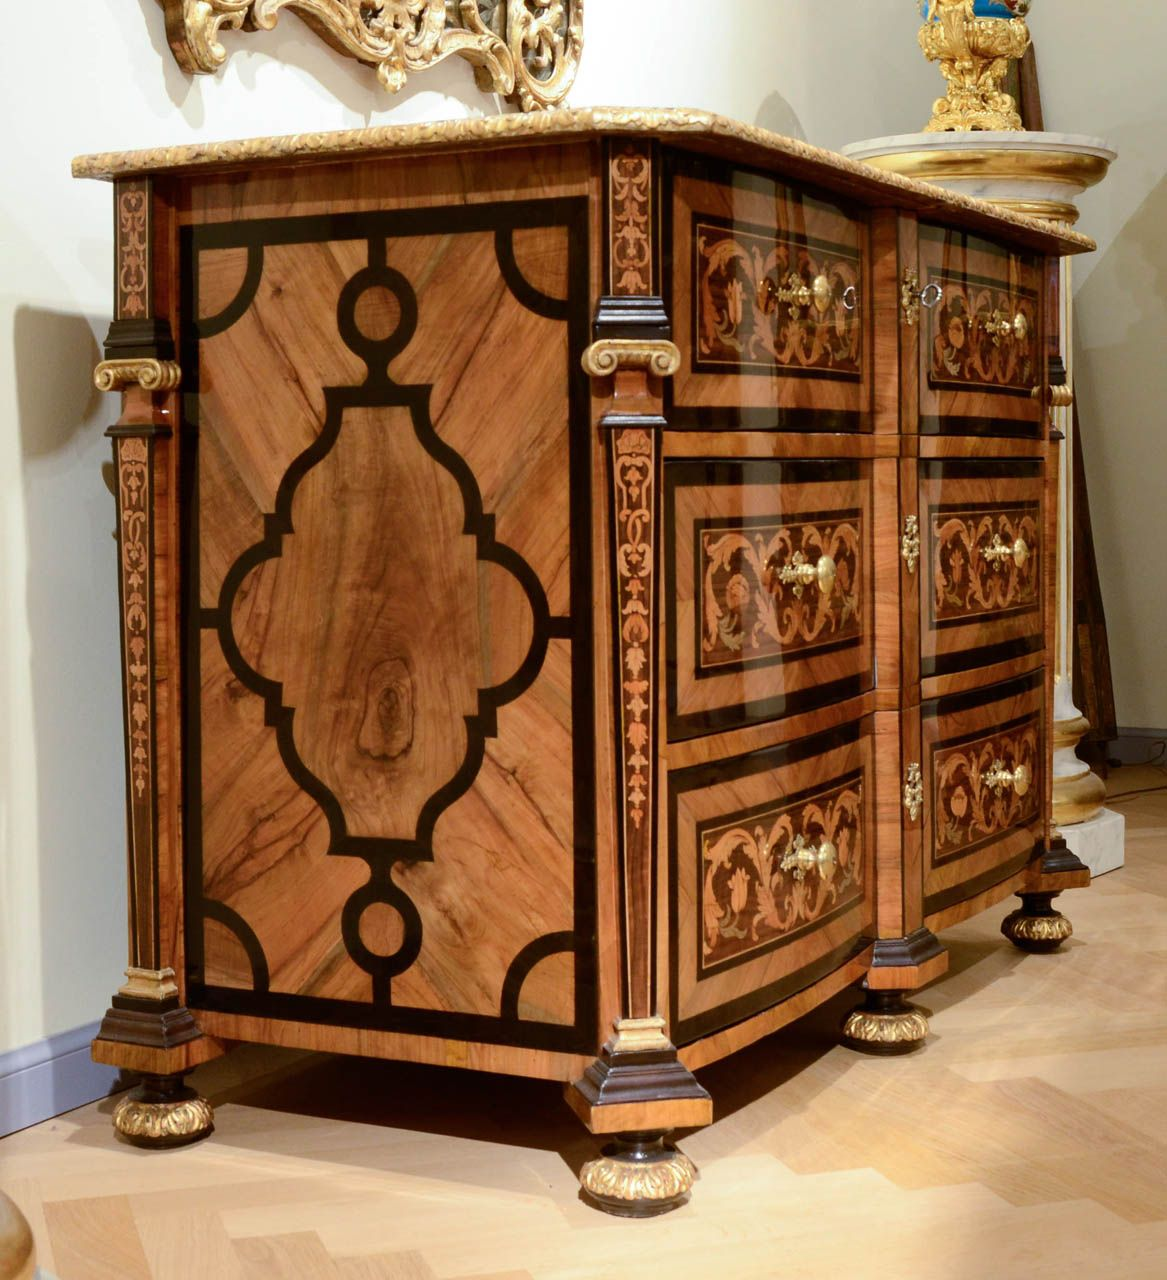 18th Century Commode in Marquetry and Veneer Ebony Wood